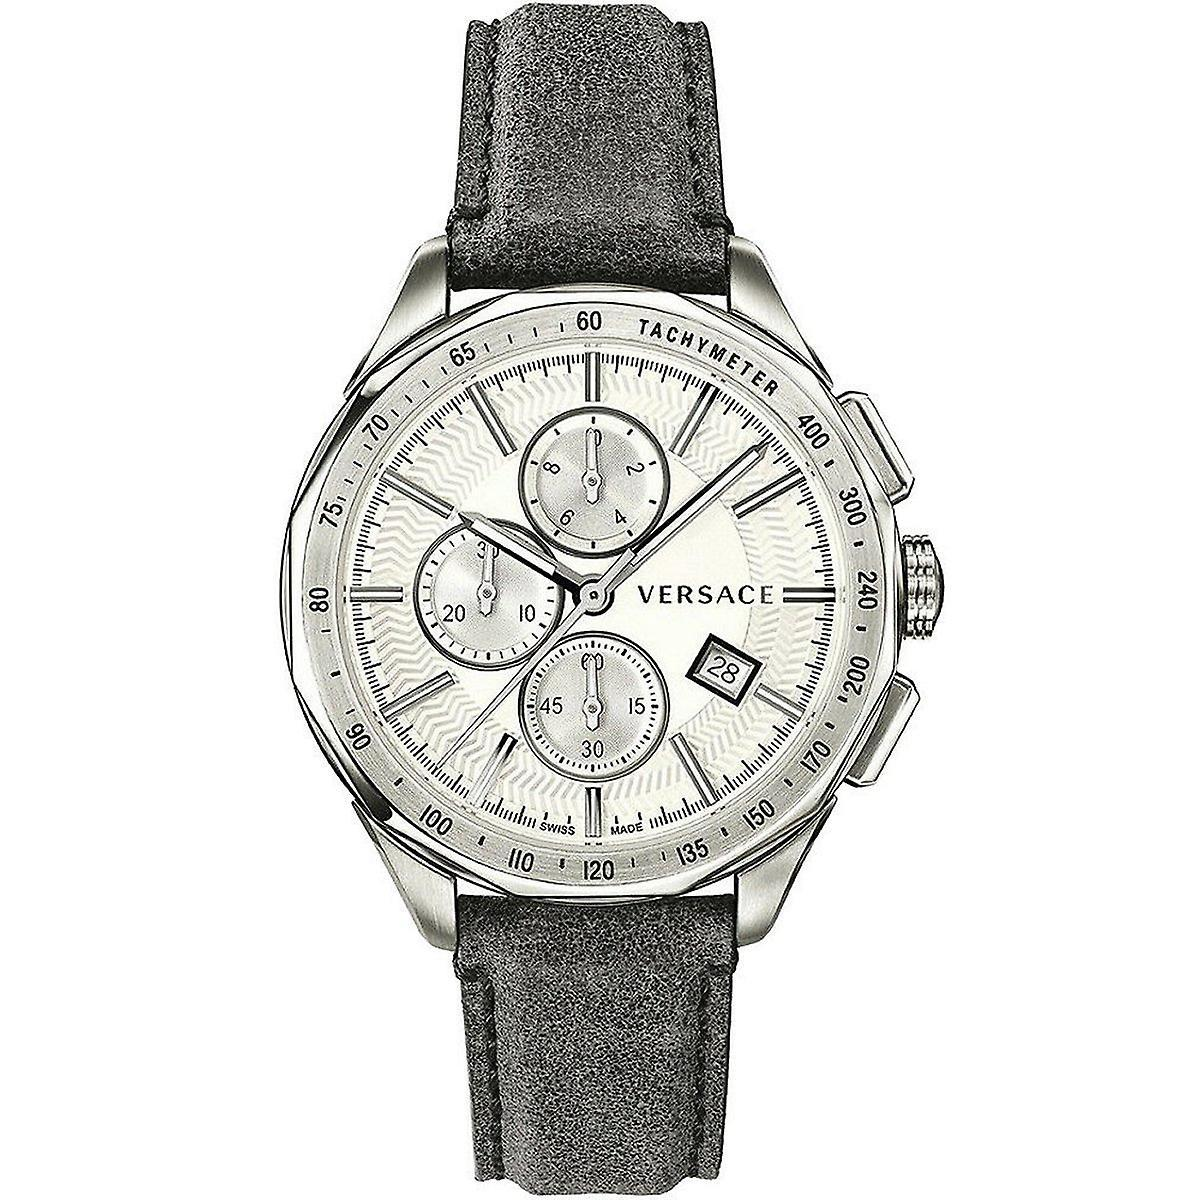 Versace Glaze Chronograph White - Watches & Crystals